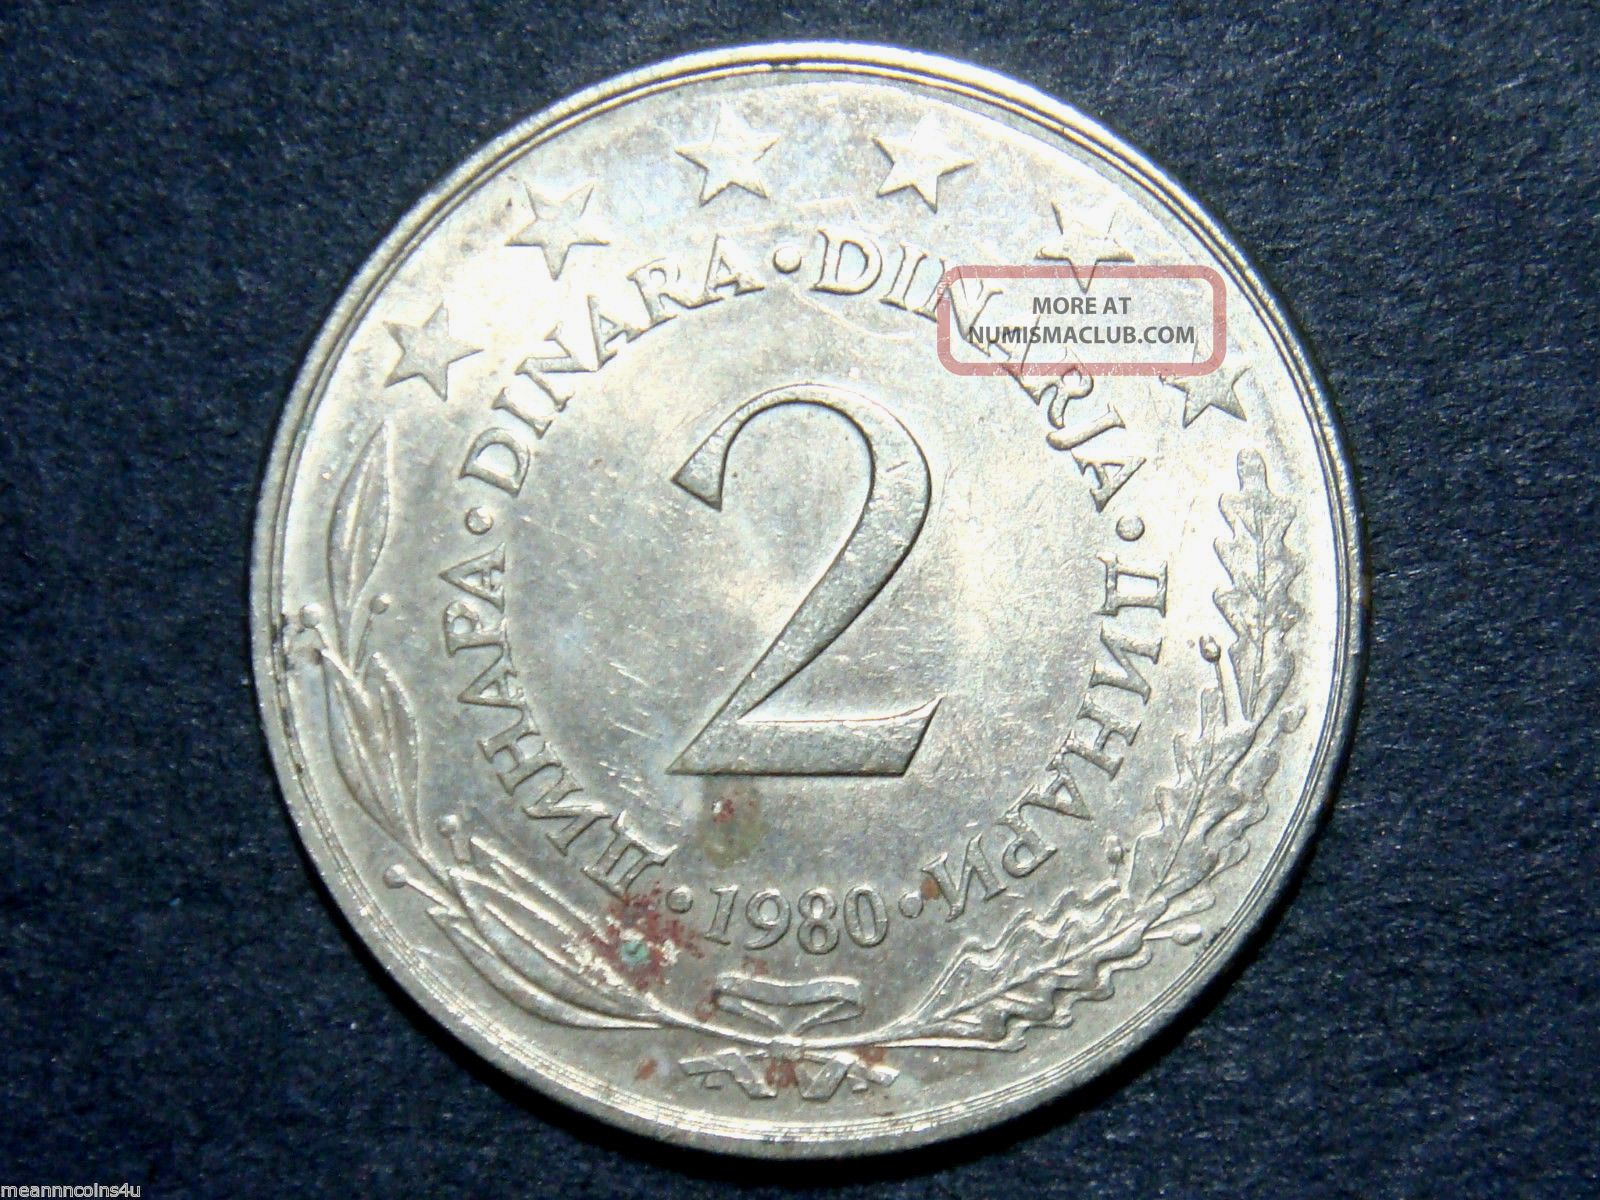 1980 Yugoslavia 2 Dinara,  Doubled Die Obverse - Au Coins: World photo